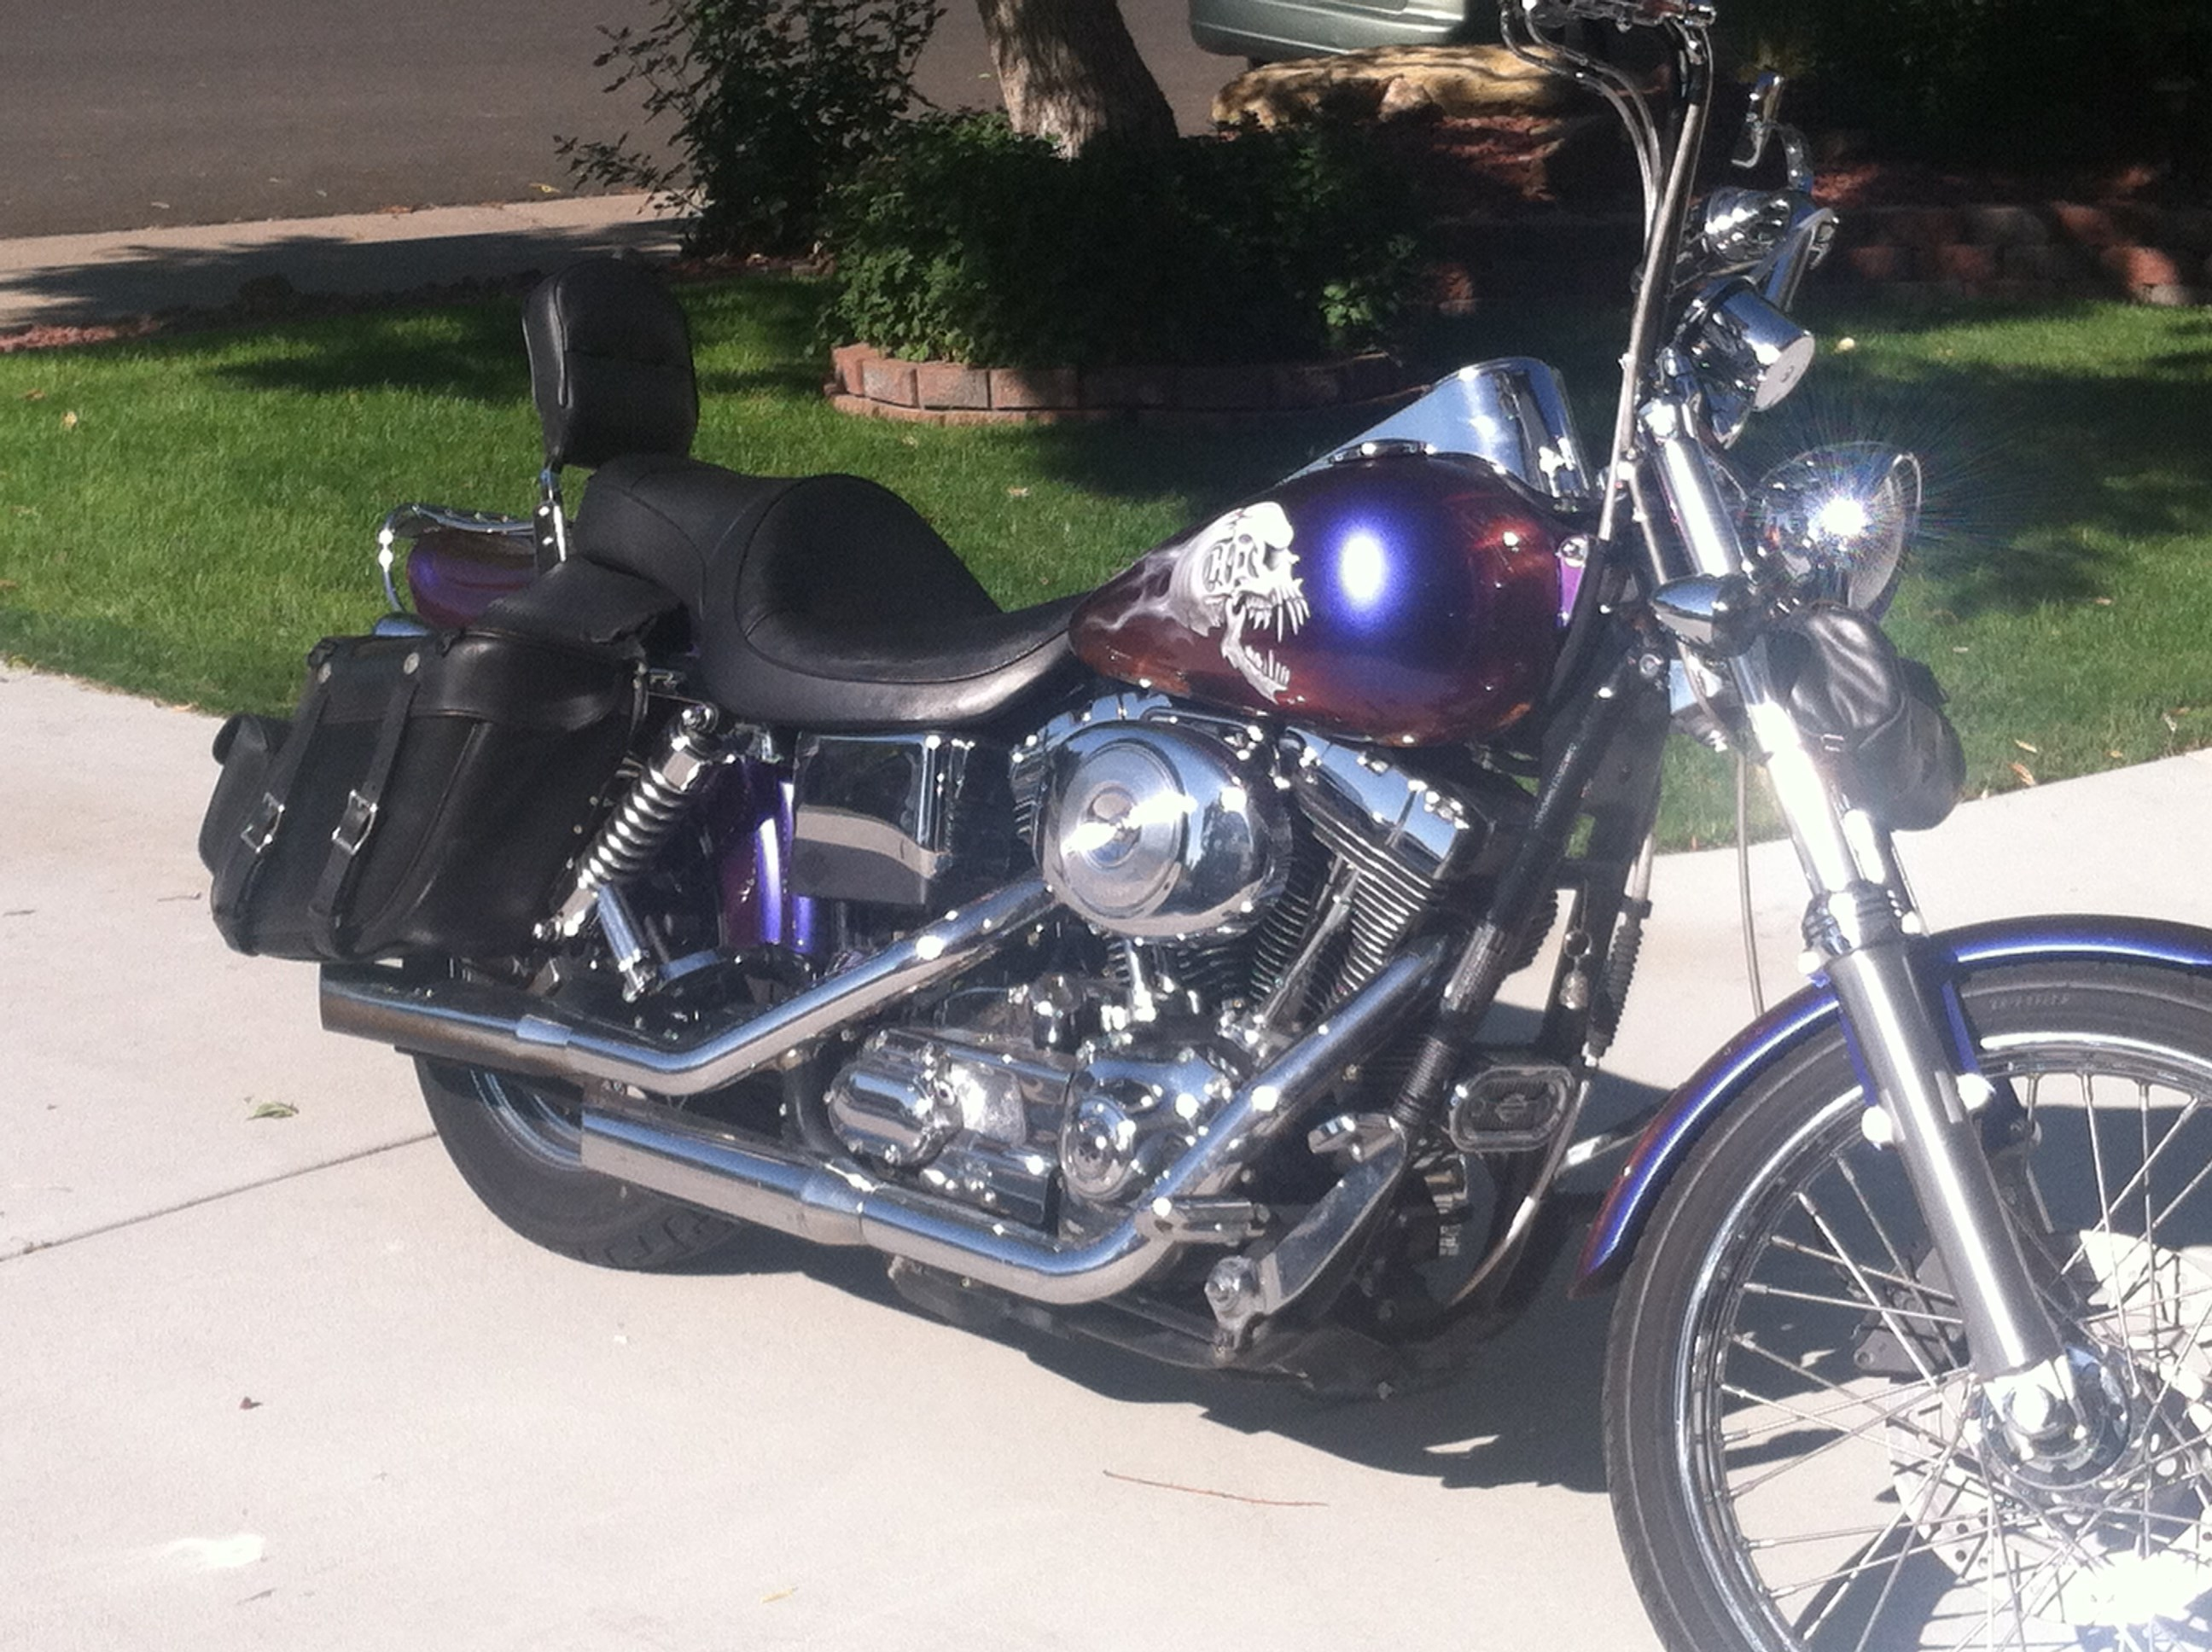 2001 harley davidson fxdx dyna super glide sport tan n purple camillion thornton colorado. Black Bedroom Furniture Sets. Home Design Ideas